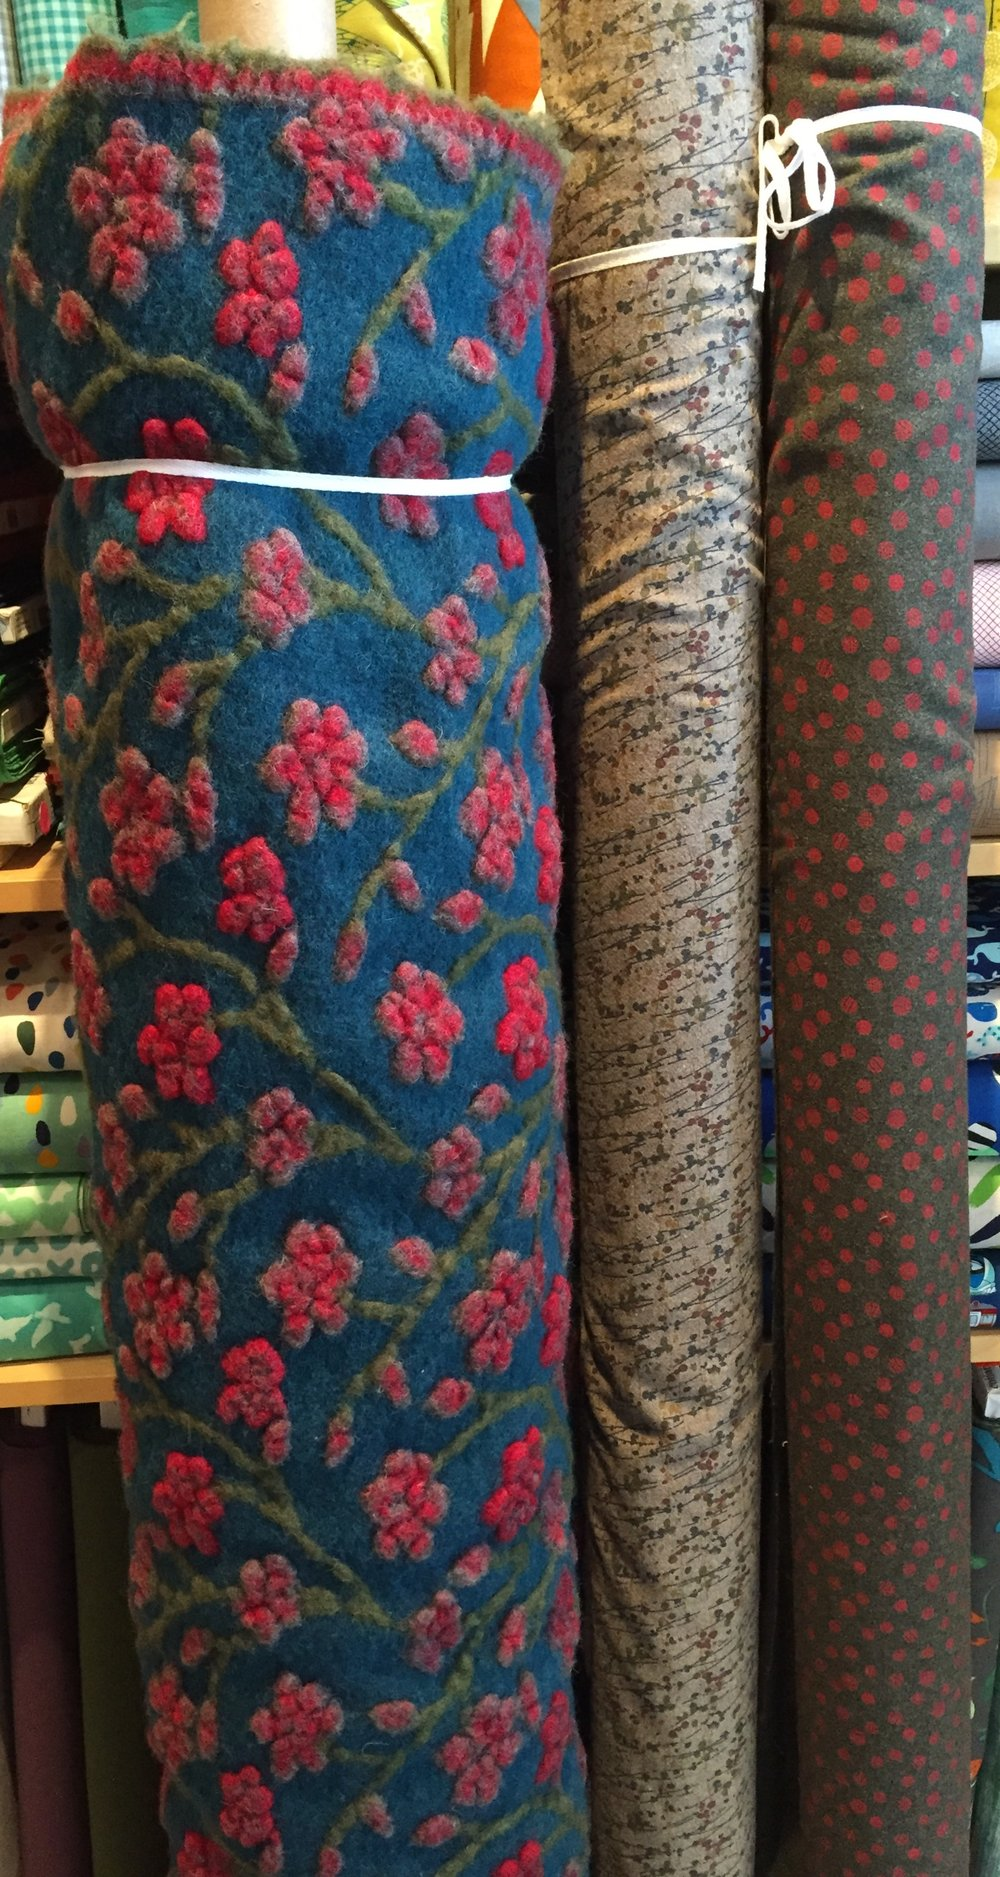 A very special boiled wool blossom design, and two printed lighter weight wools, a la Prada.